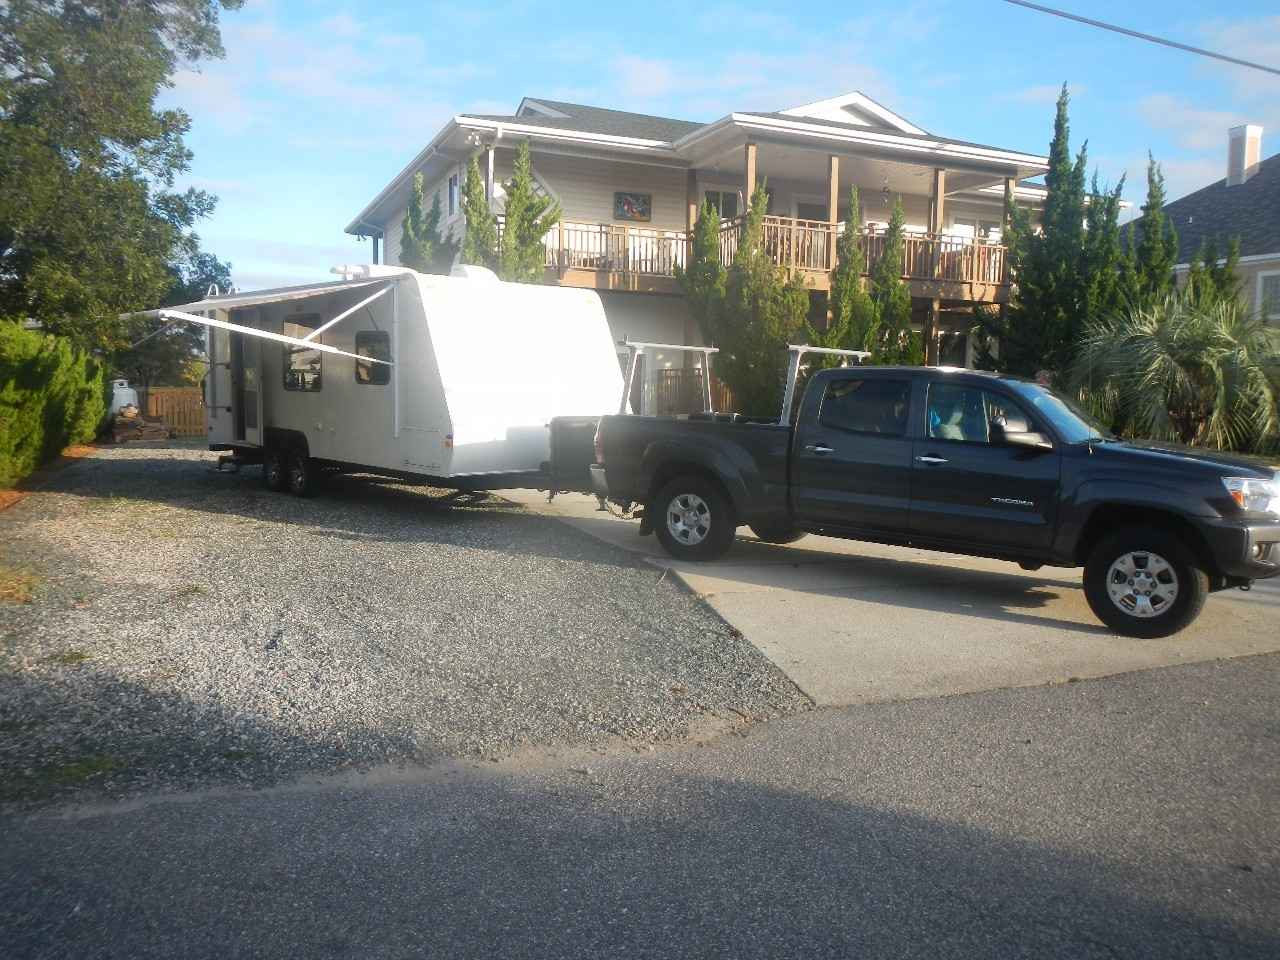 2012 Used Forest River Surveyor Sport 230 Travel Trailer